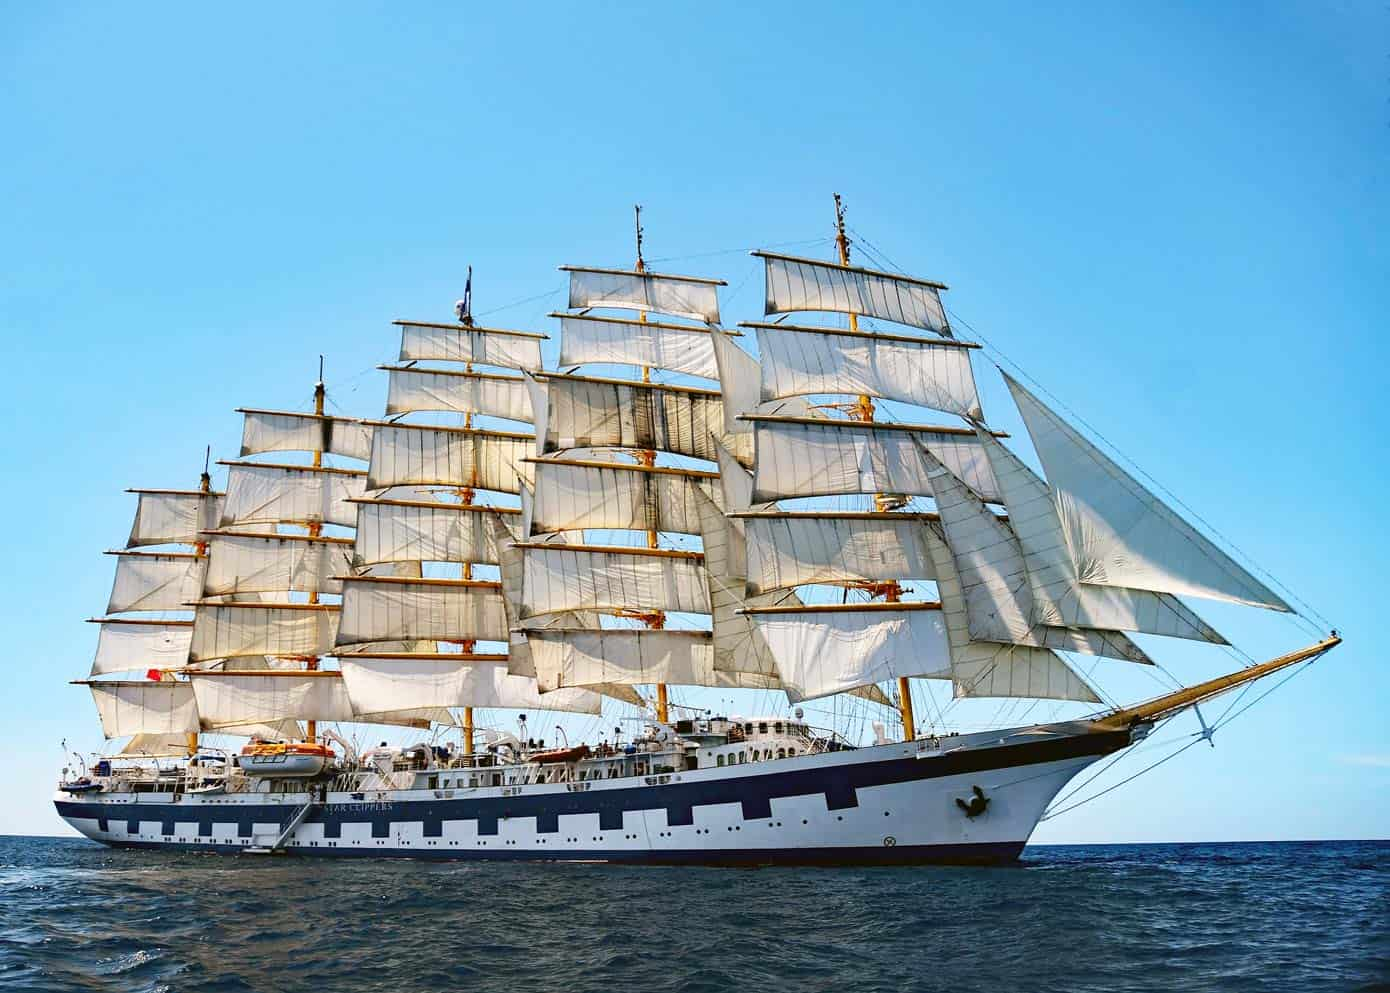 Large sailing ship in the ocean on a gorgeous day with blue skies.